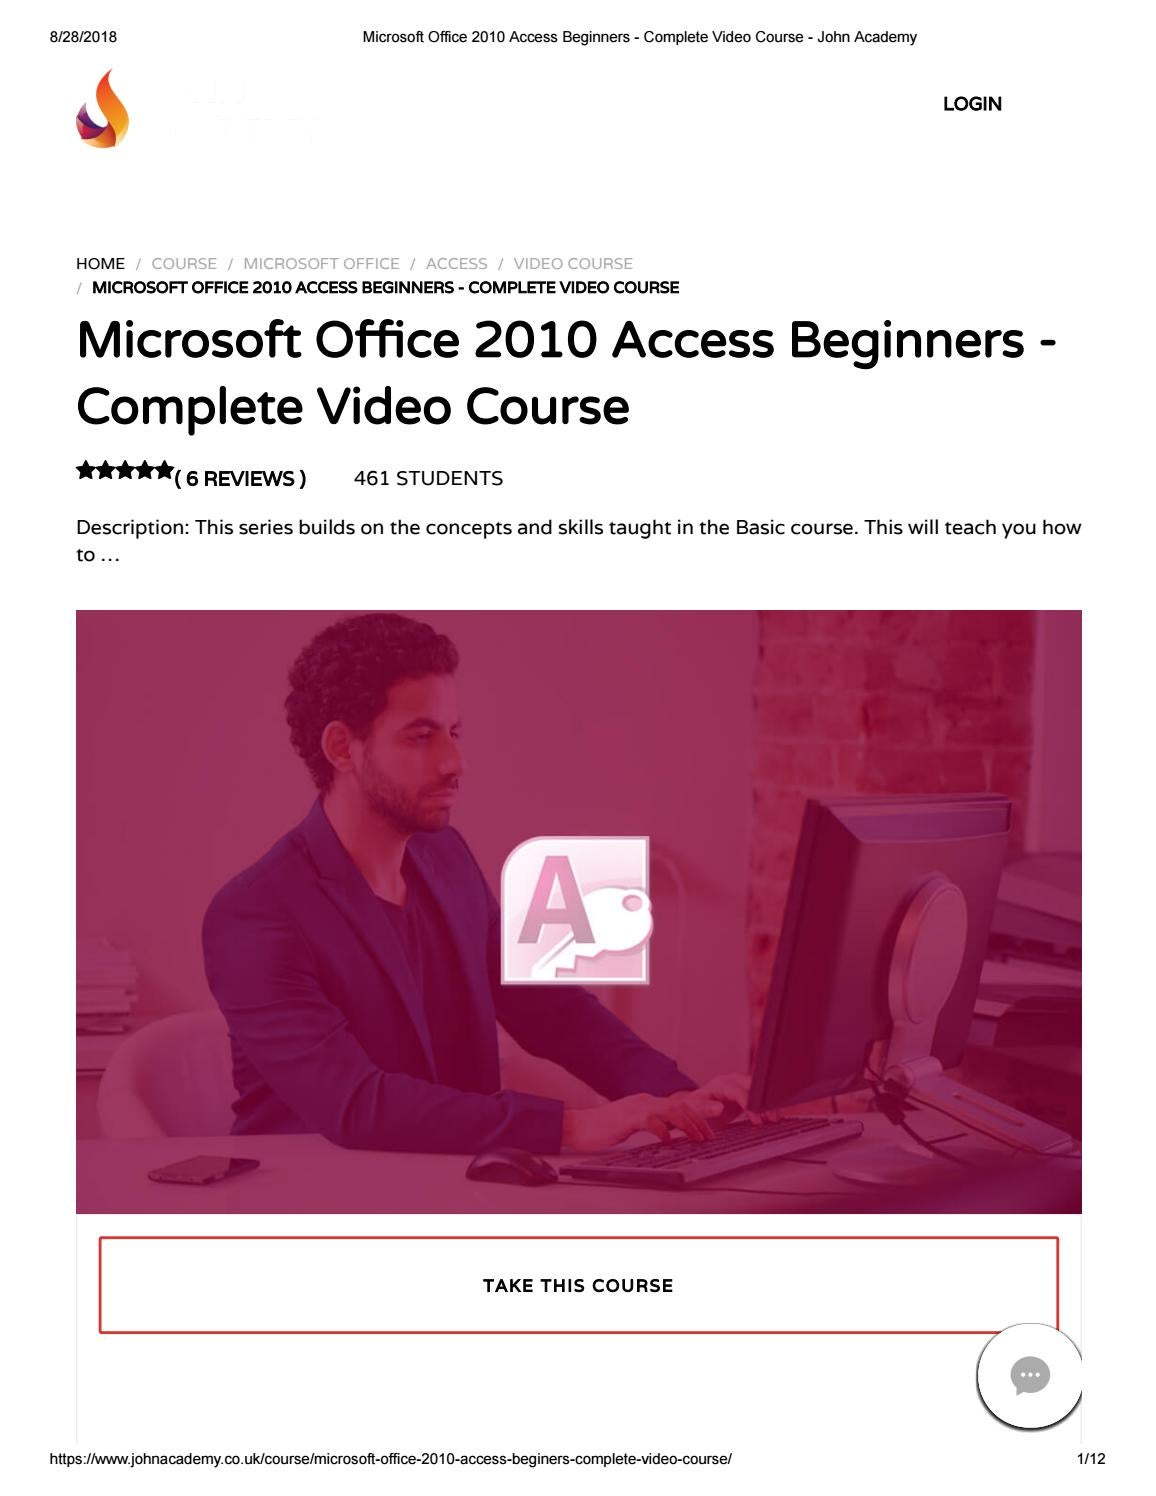 Microsoft Office 2010 Access Beginners - Complete Video